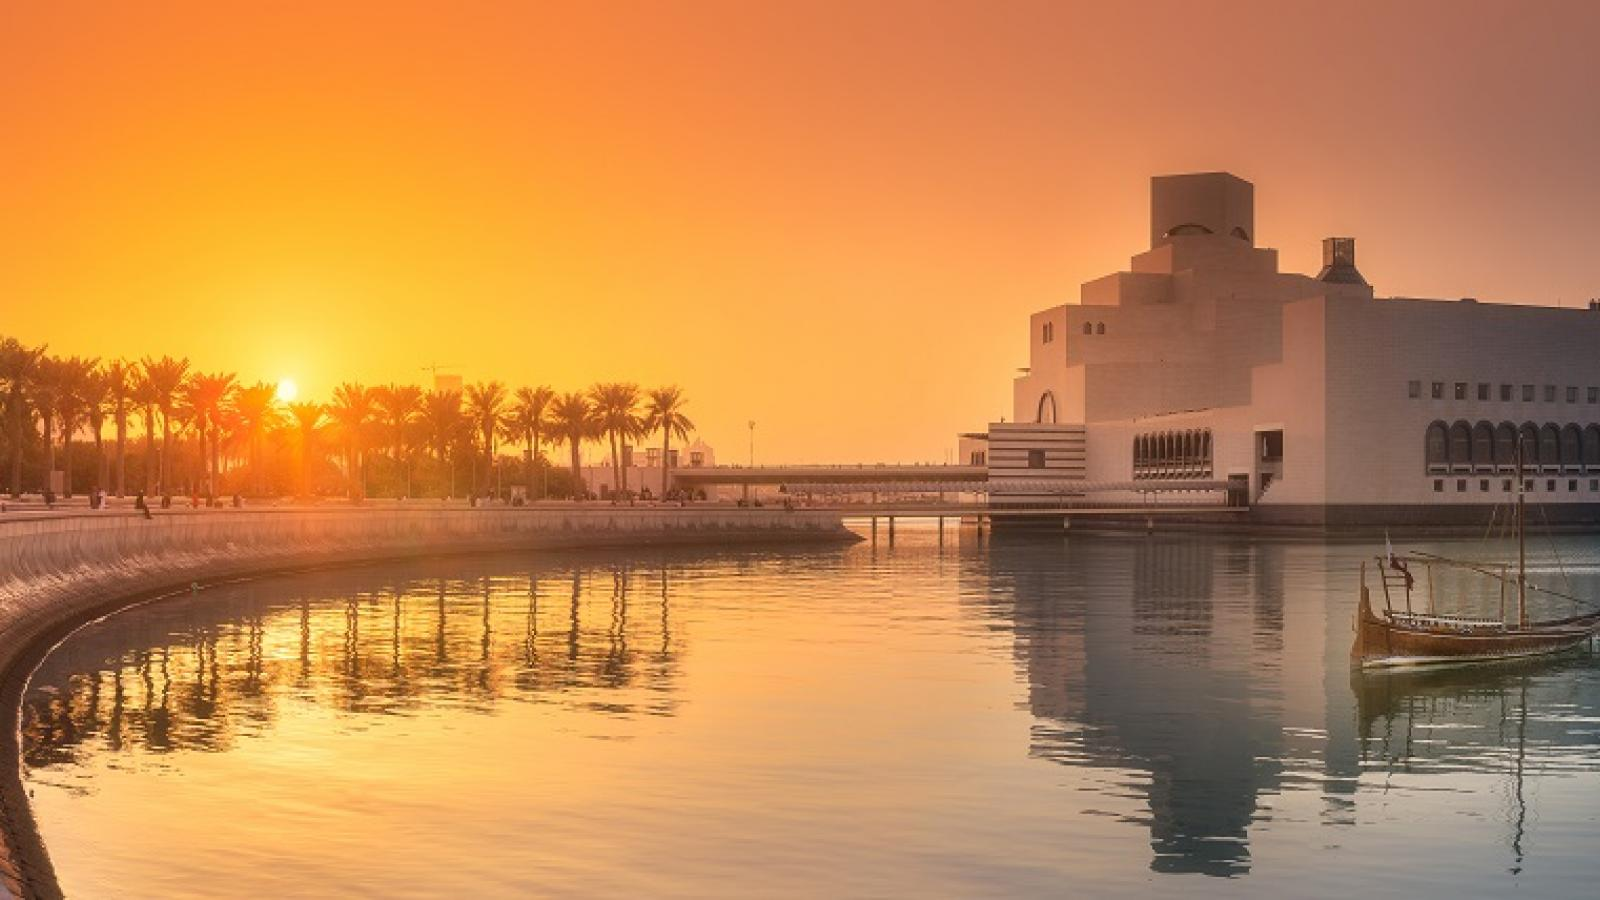 Explore more of Qatar with Qatar Museums' Monopoly challenge